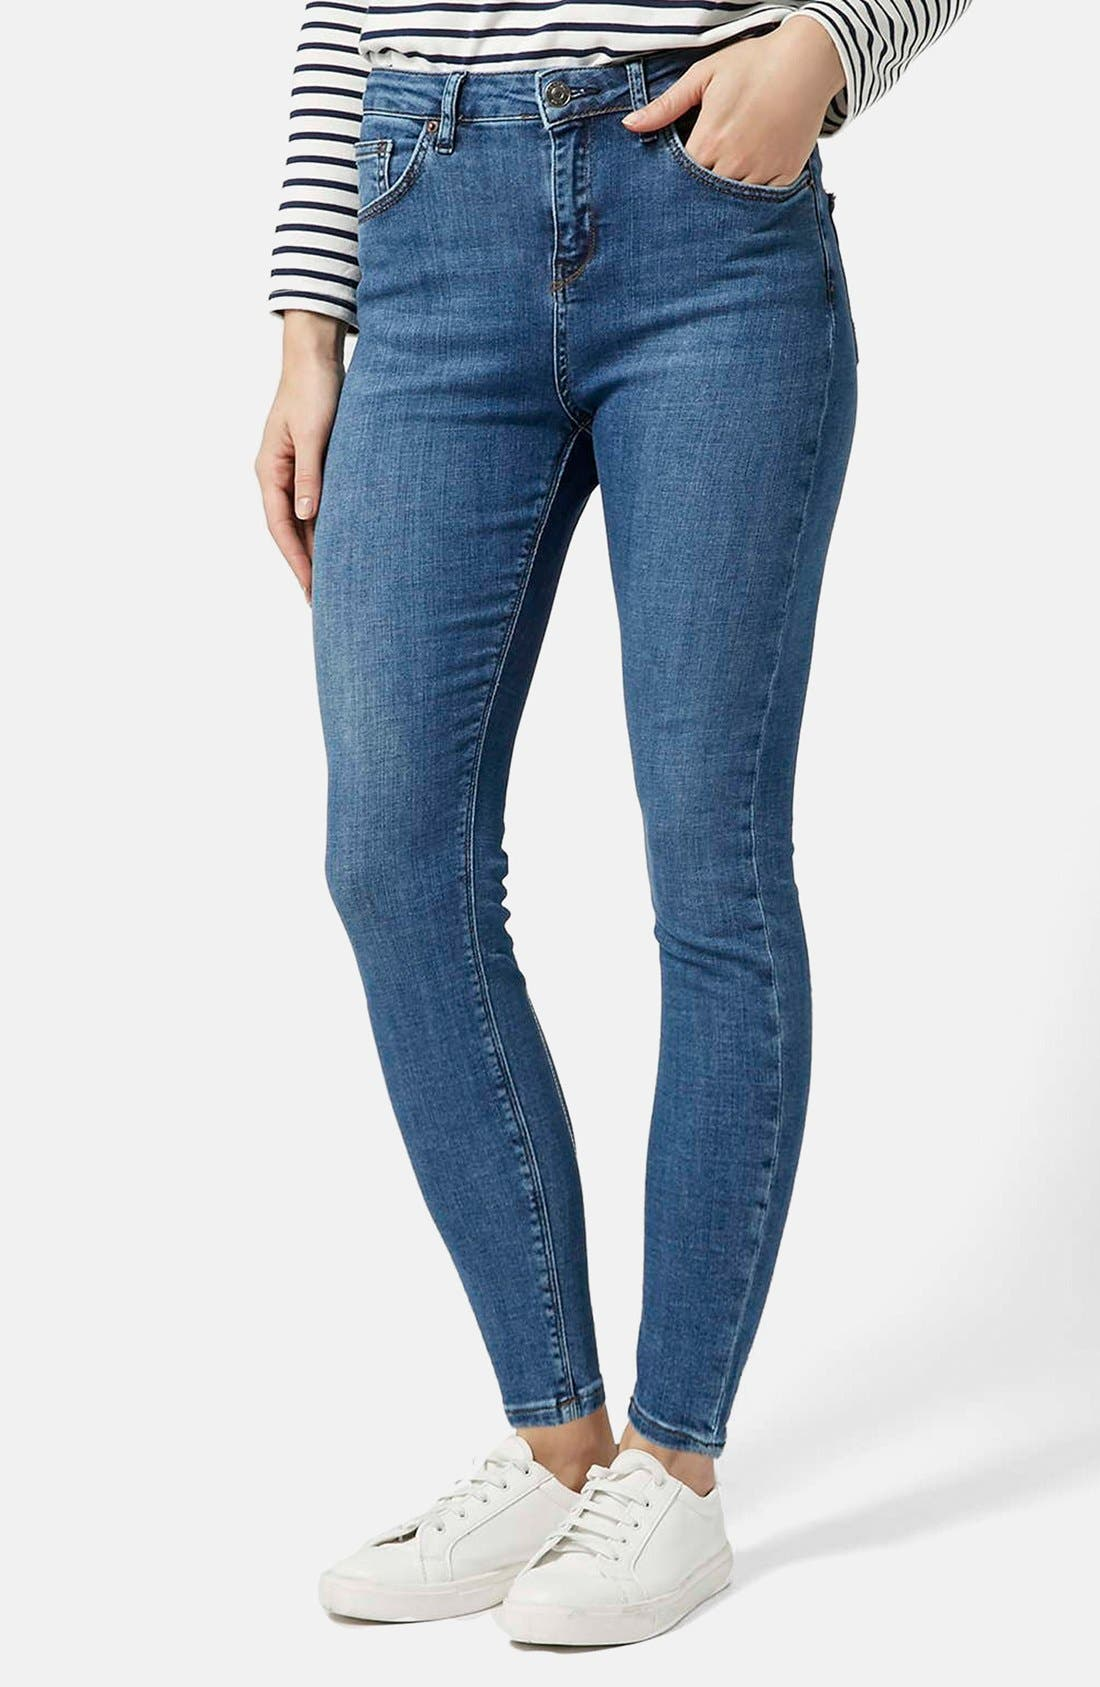 Main Image - Topshop Moto 'Cain' High Rise Ankle Jeans (Blue) (Short)